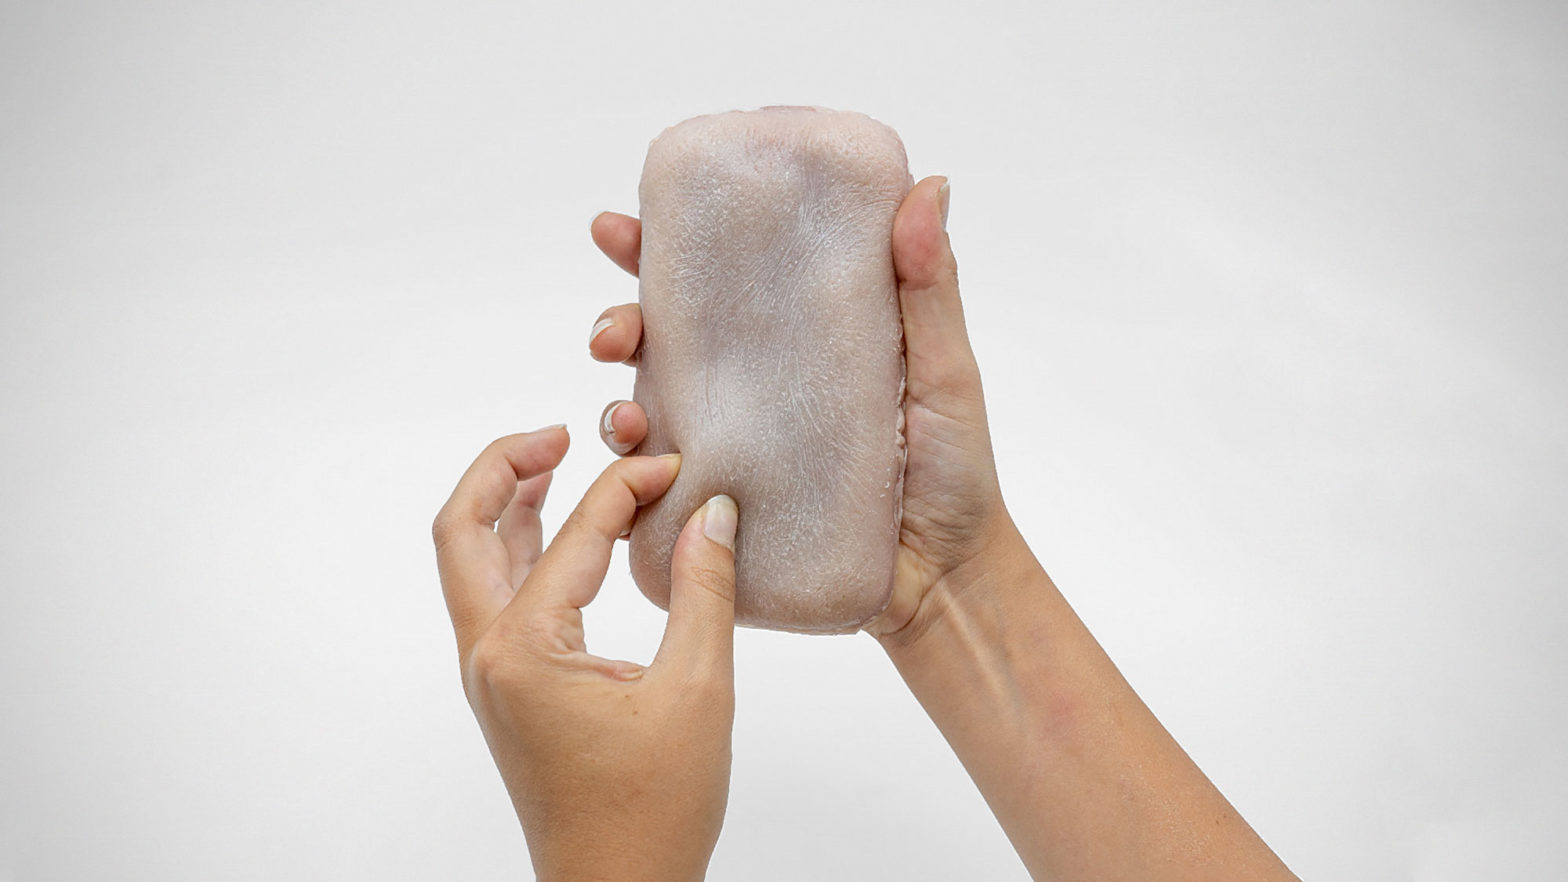 Skin-On Artificial Skin for Mobile Devices